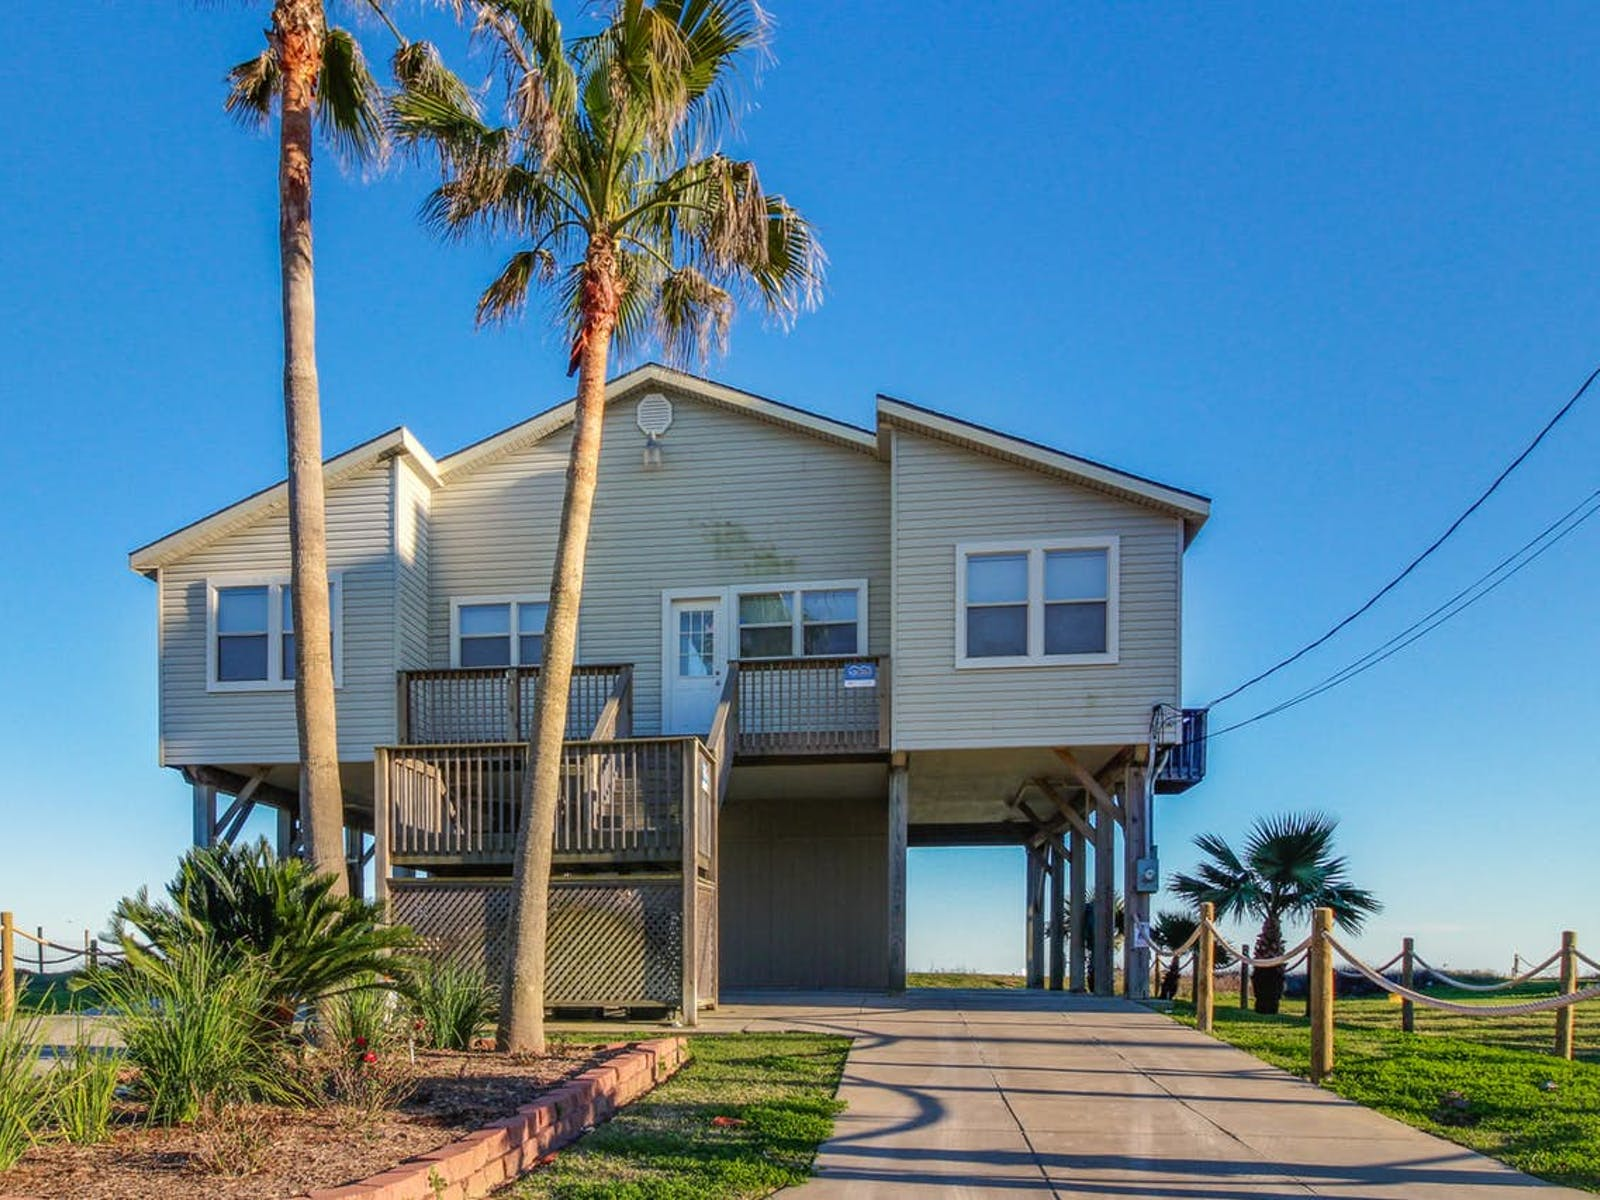 Galveston, TX vacation home with palm trees and blue skies